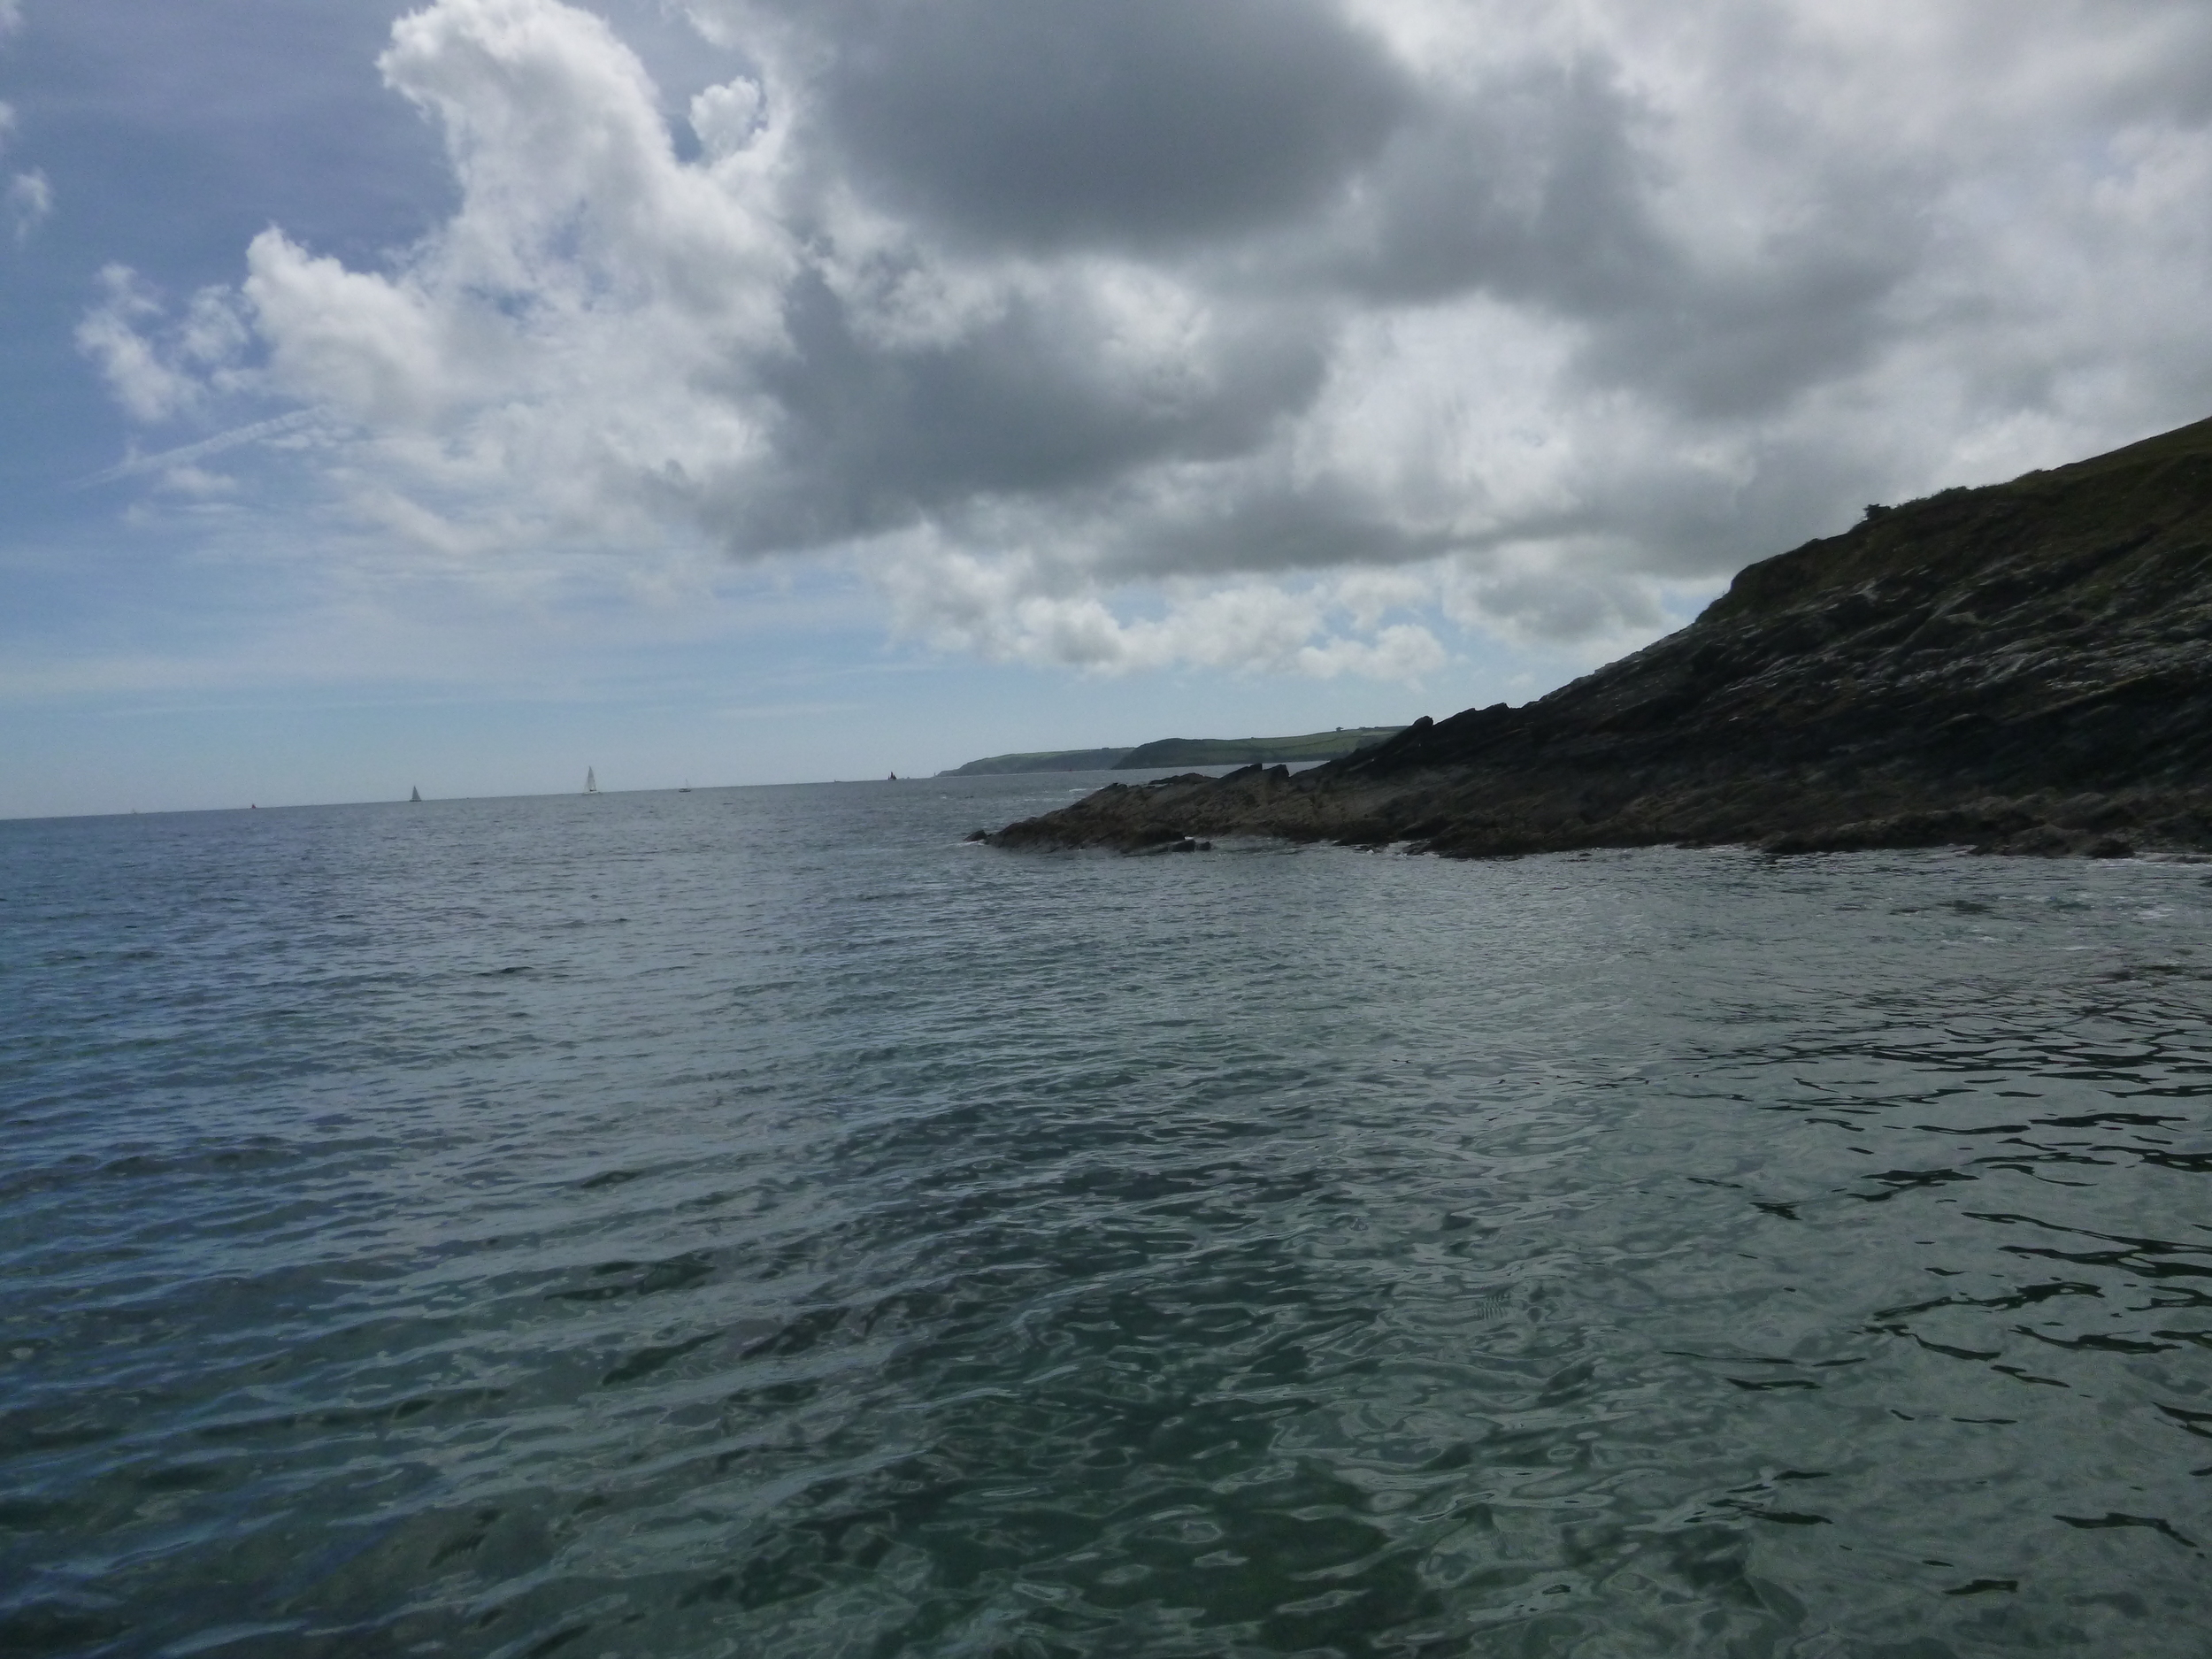 The view from a SUP past Rosemullion Head down the Lizard